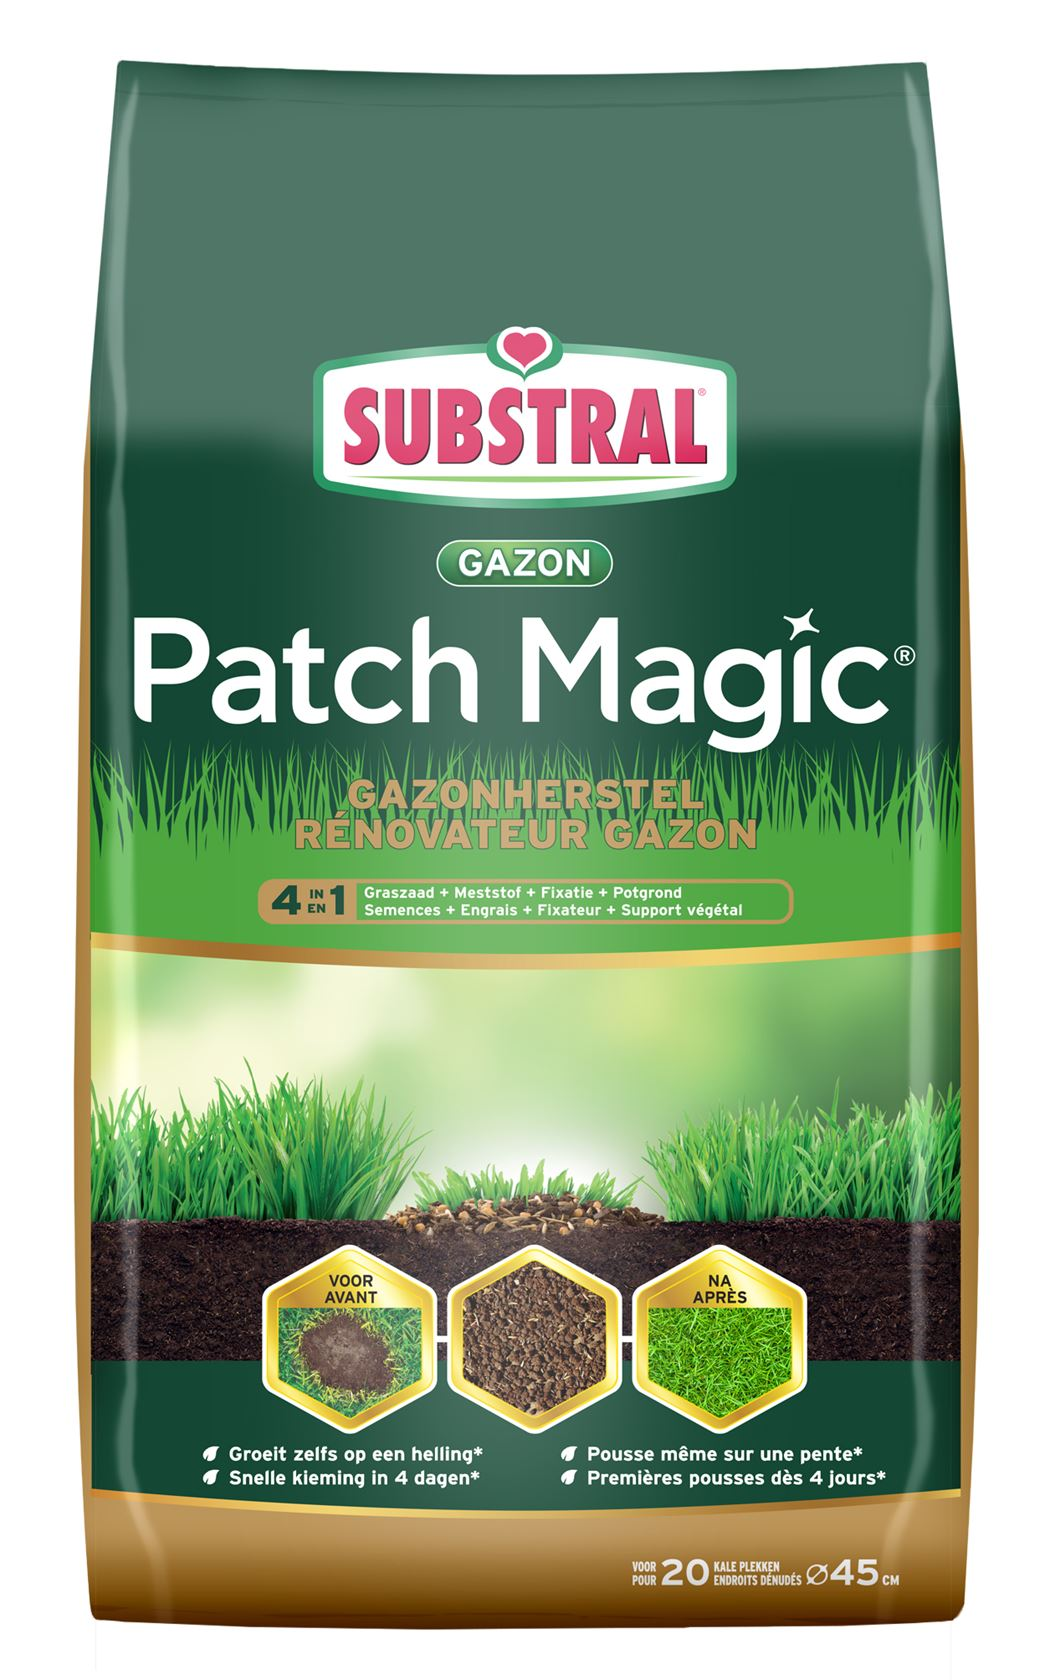 Substral patch magic® gazonherstel 4-in-1 - 1,5kg